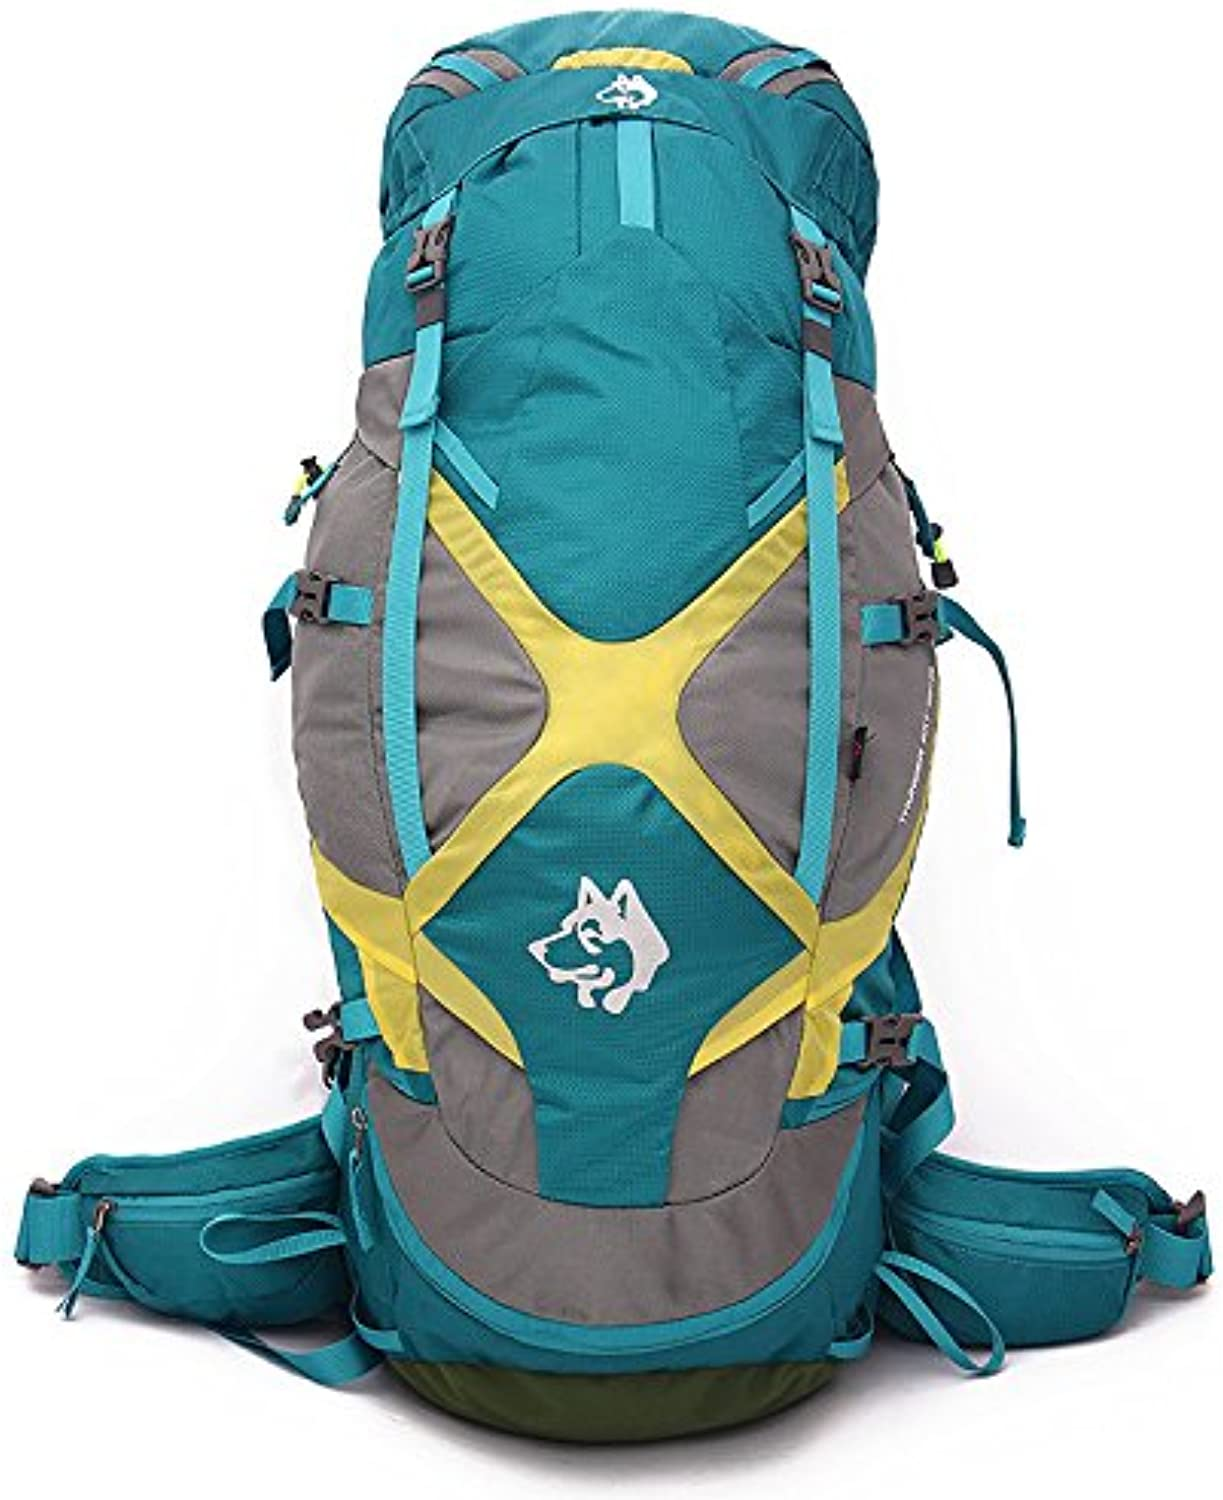 Hiking Backpack, 65L Water Repellent Camping Outdoor Trekking Daypack, for Mountaineering,Travel,Camping,Trekking